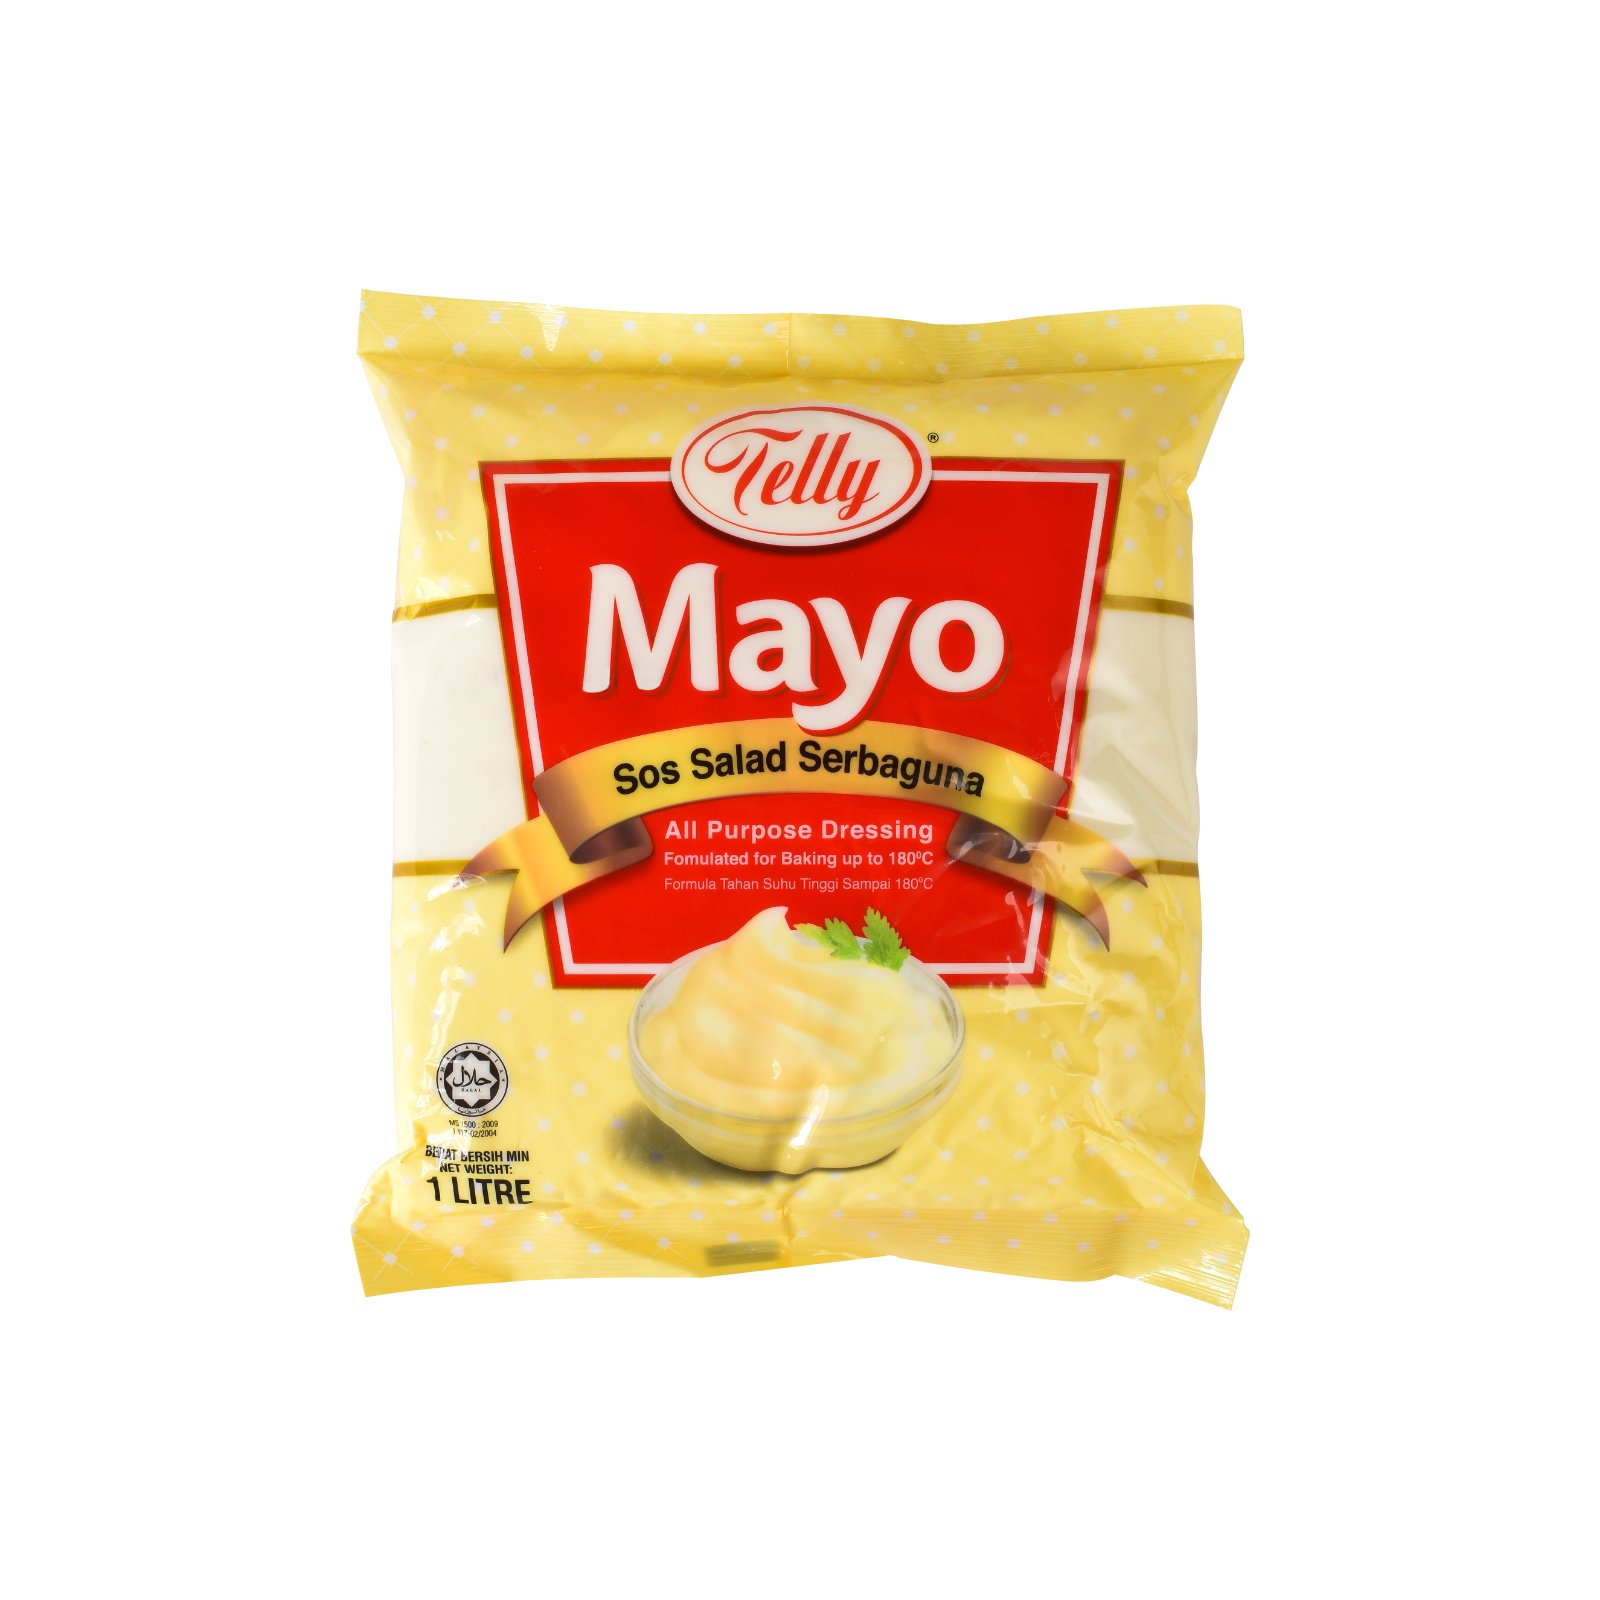 Telly Mayo.png